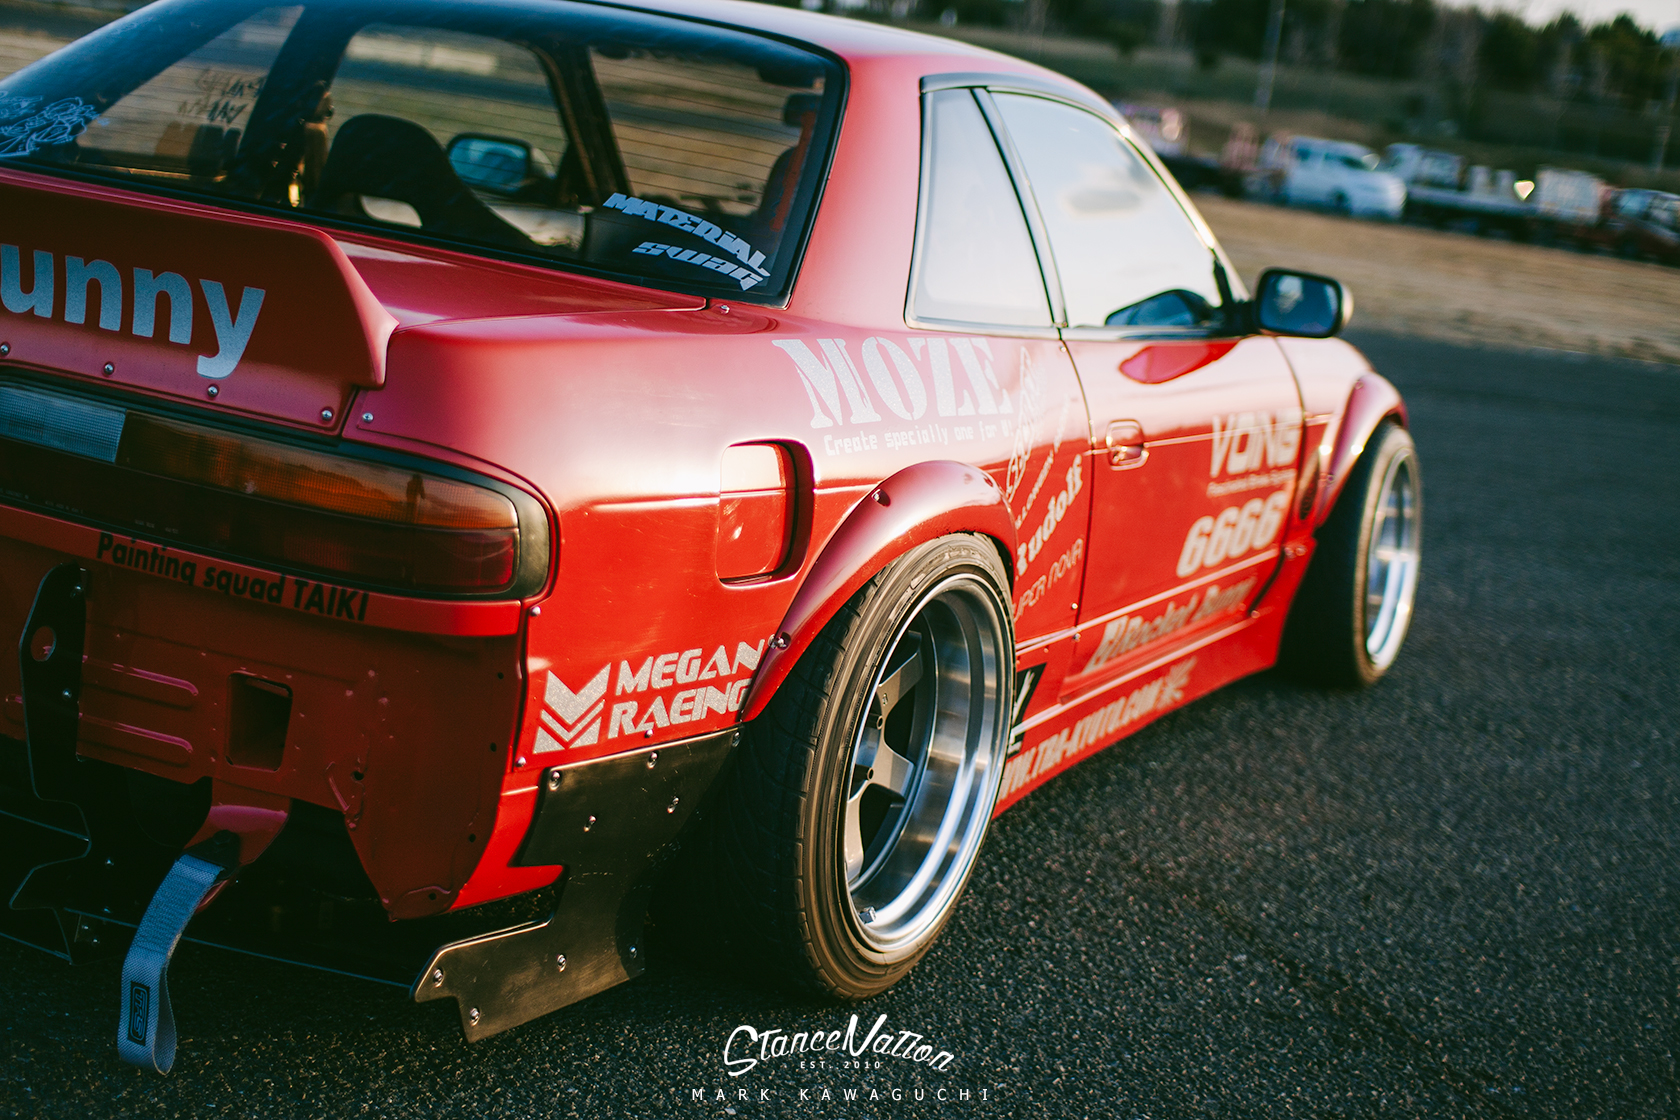 rocket-bunny-nissan-japan-6666-customs-S13-12